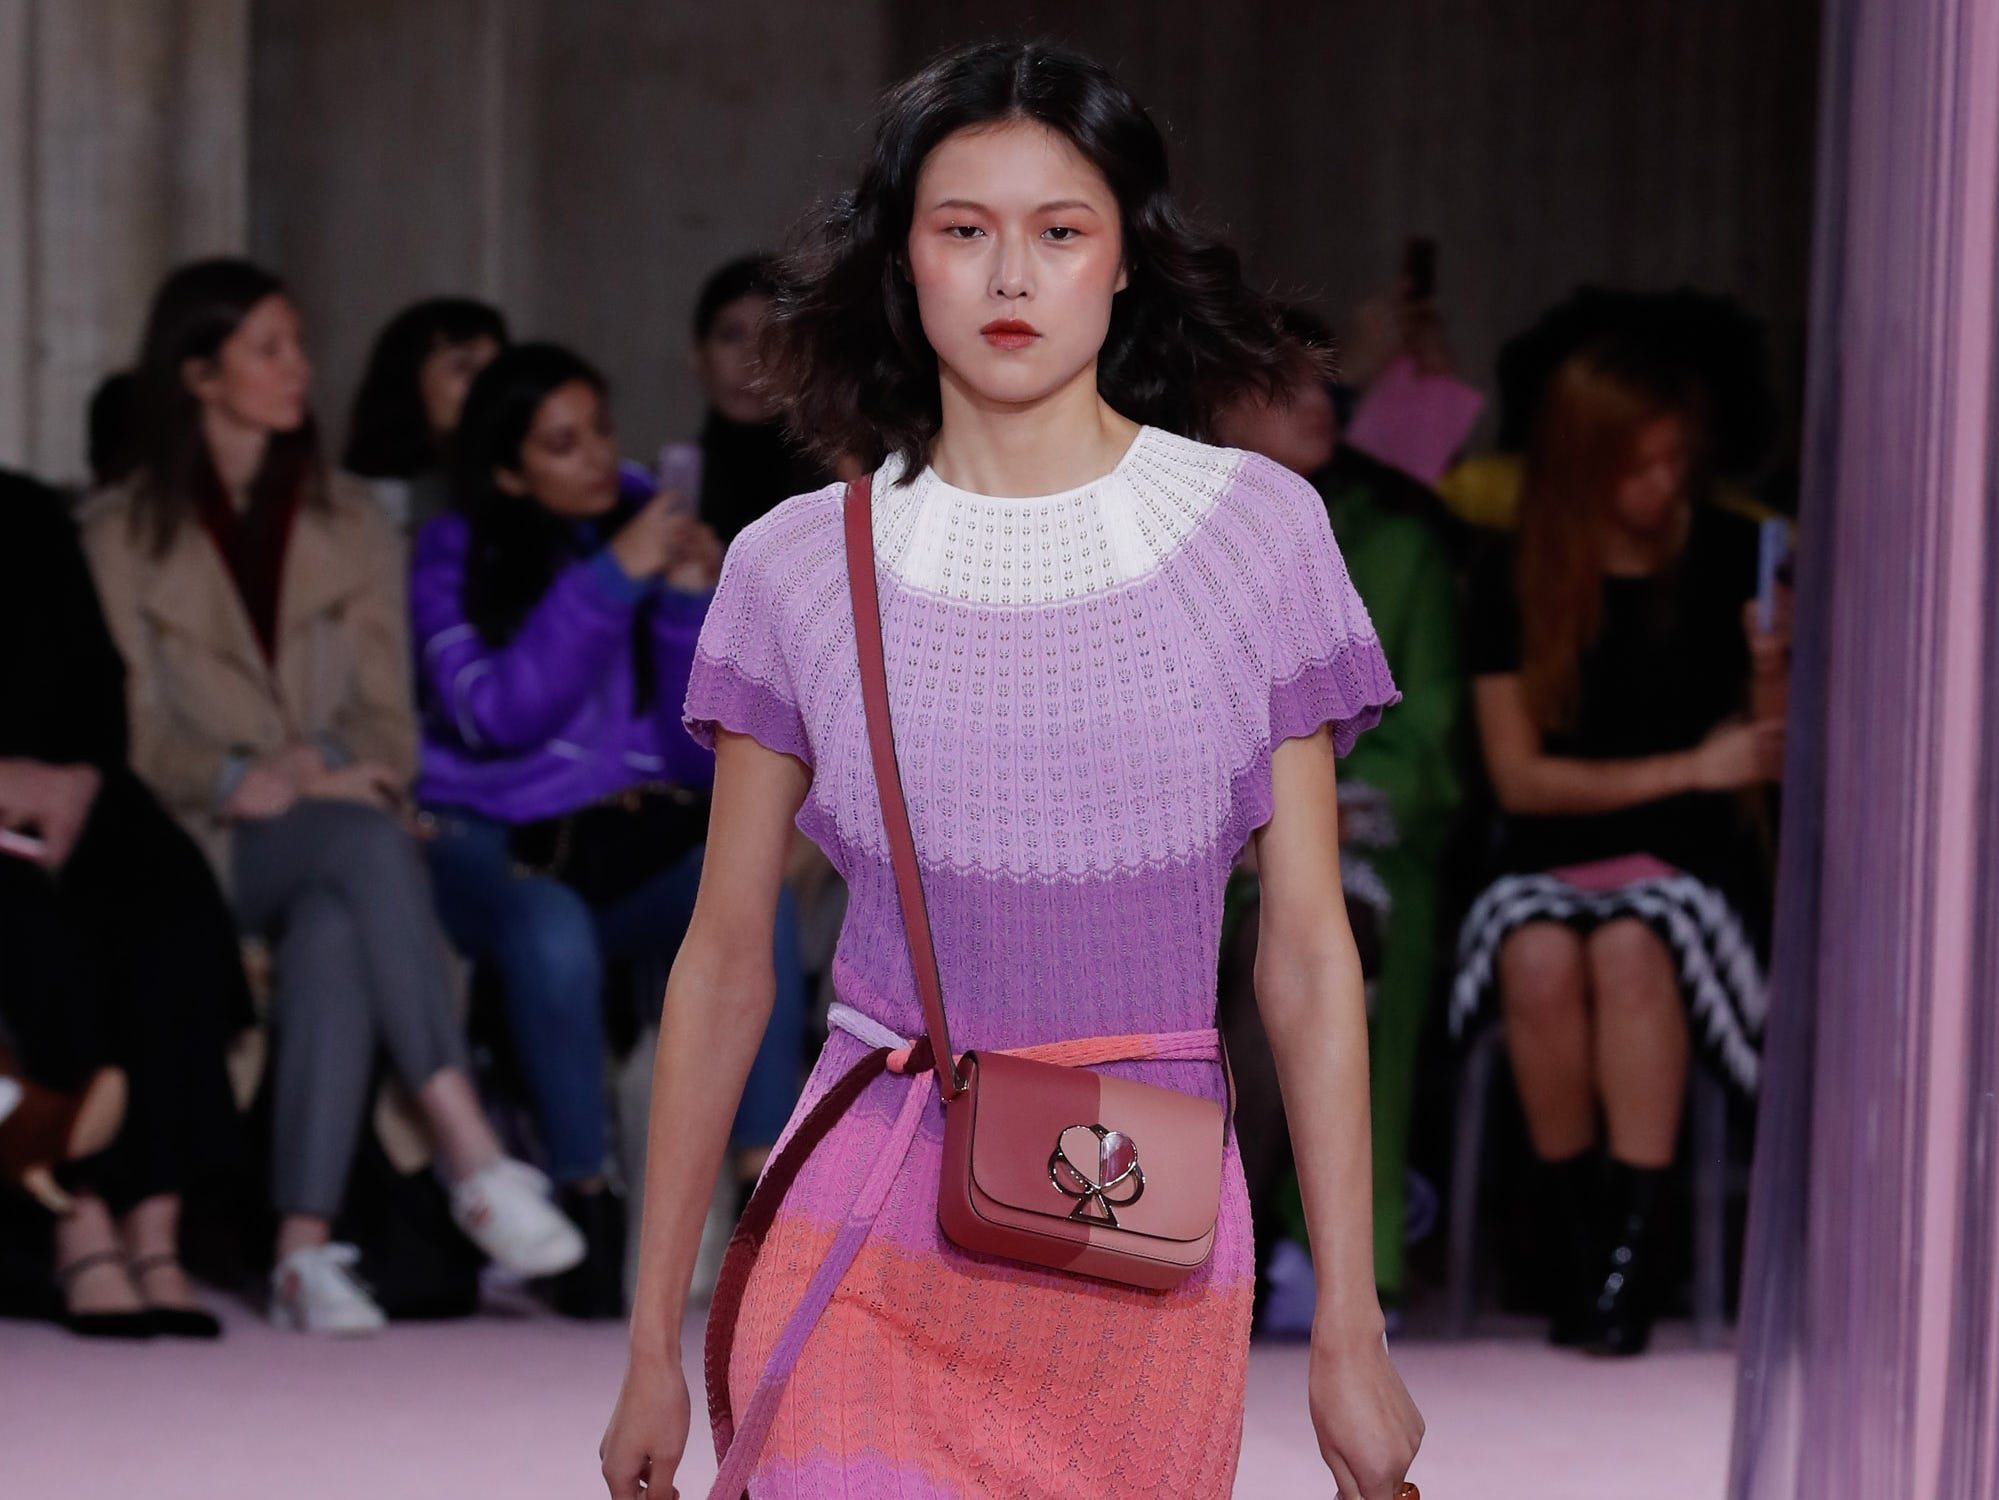 NEW YORK, NY - FEBRUARY 08:  A model walks the runway at the Kate Spade AW19 Collection at Cipriani 25 Broadway on February 8, 2019 in New York City.  (Photo by JP Yim/Getty Images for TRESemme) ORG XMIT: 775289365 ORIG FILE ID: 1095662894